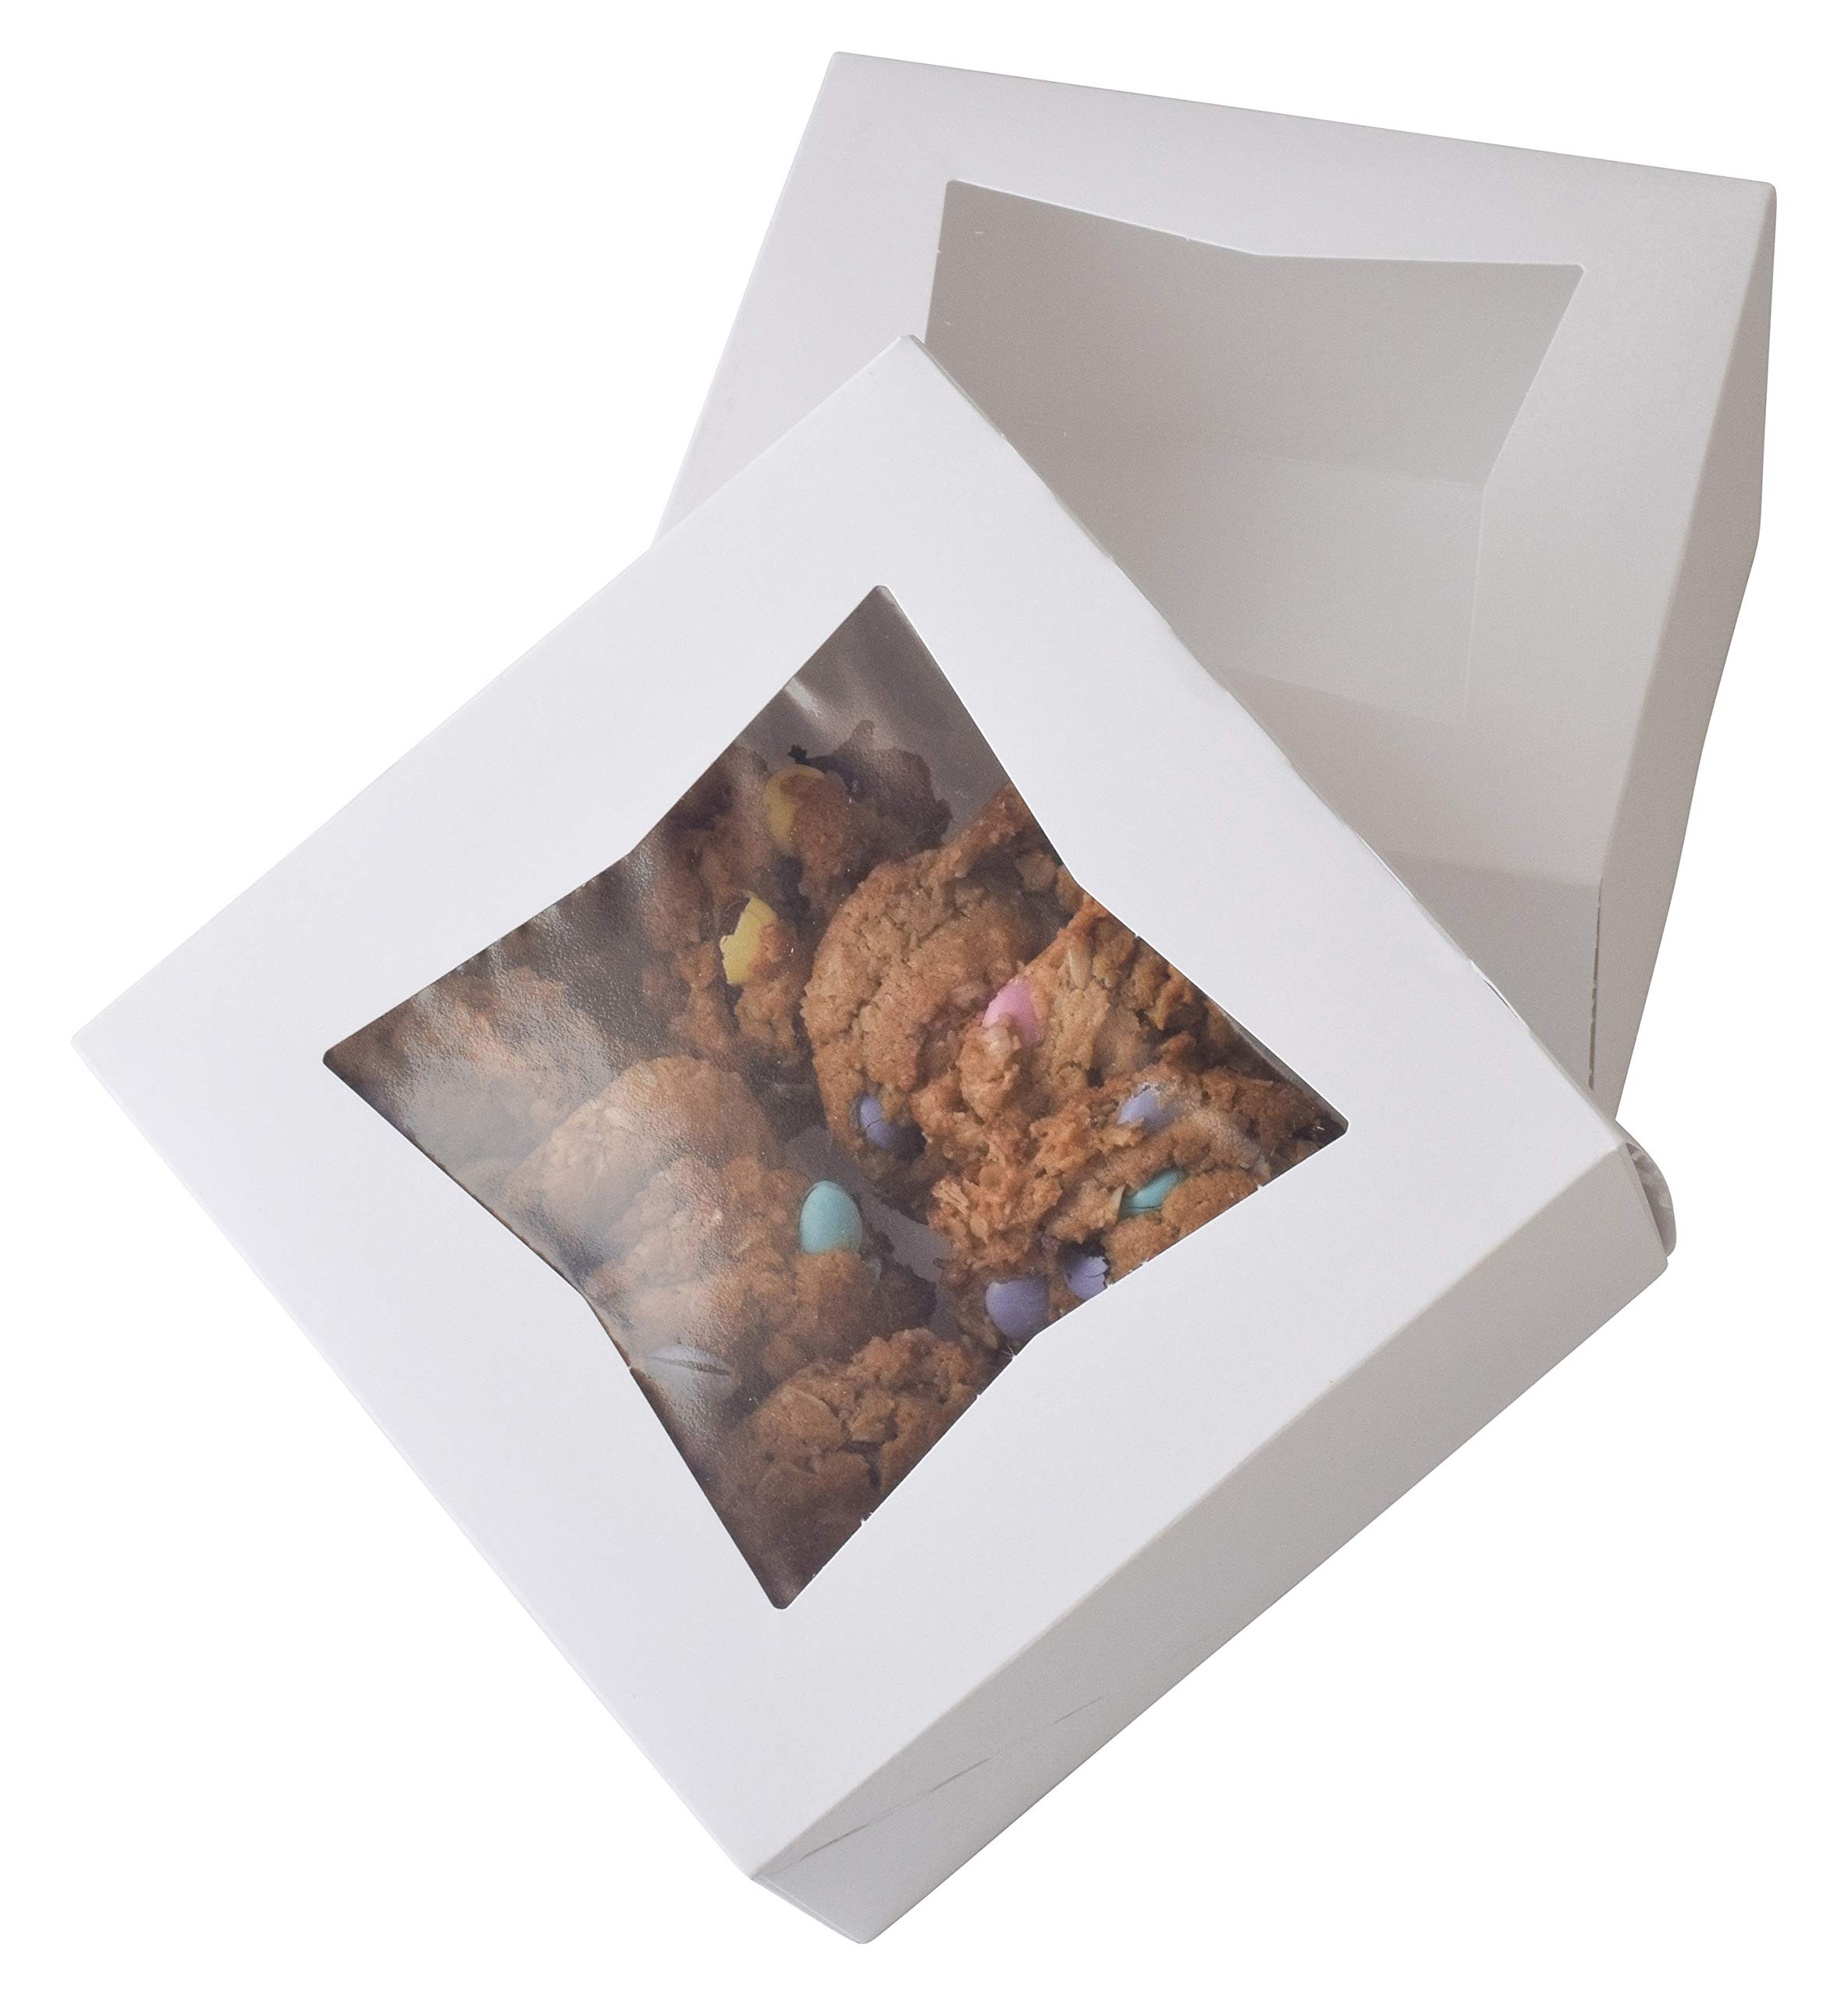 6'' x 6'' x 3'' White Bakery Box | Auto-Popup | Small Pie Boxes with Window | 20 Pack by JA Kitchens